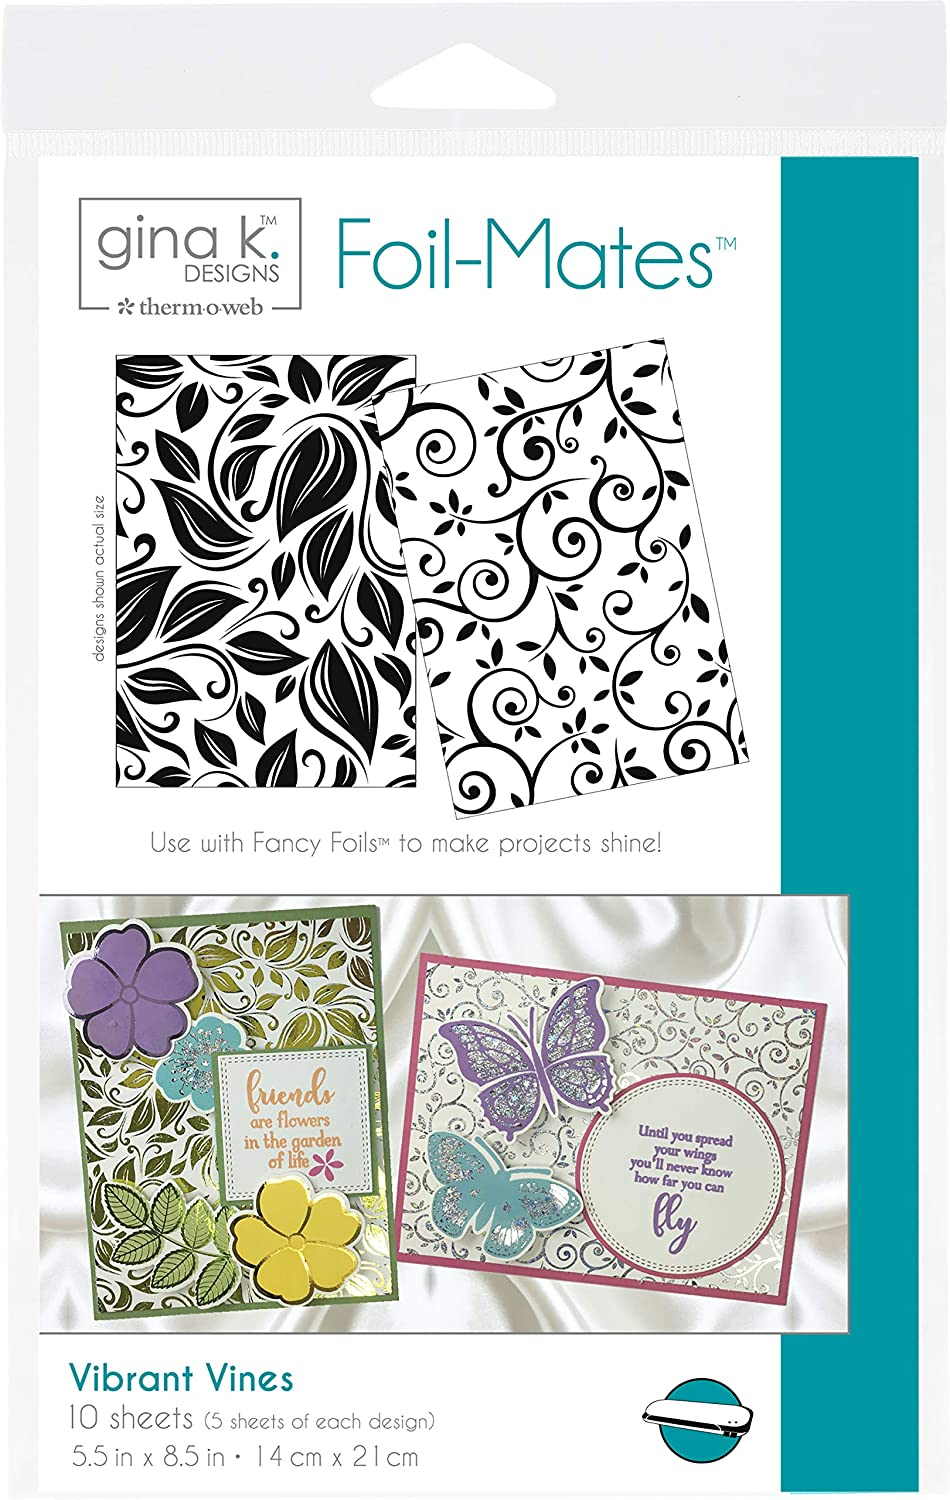 Black Designs for Therm O Web 18073 Foil-Mates 5.5 x 8.5 Vibrant Vines Background Gina K